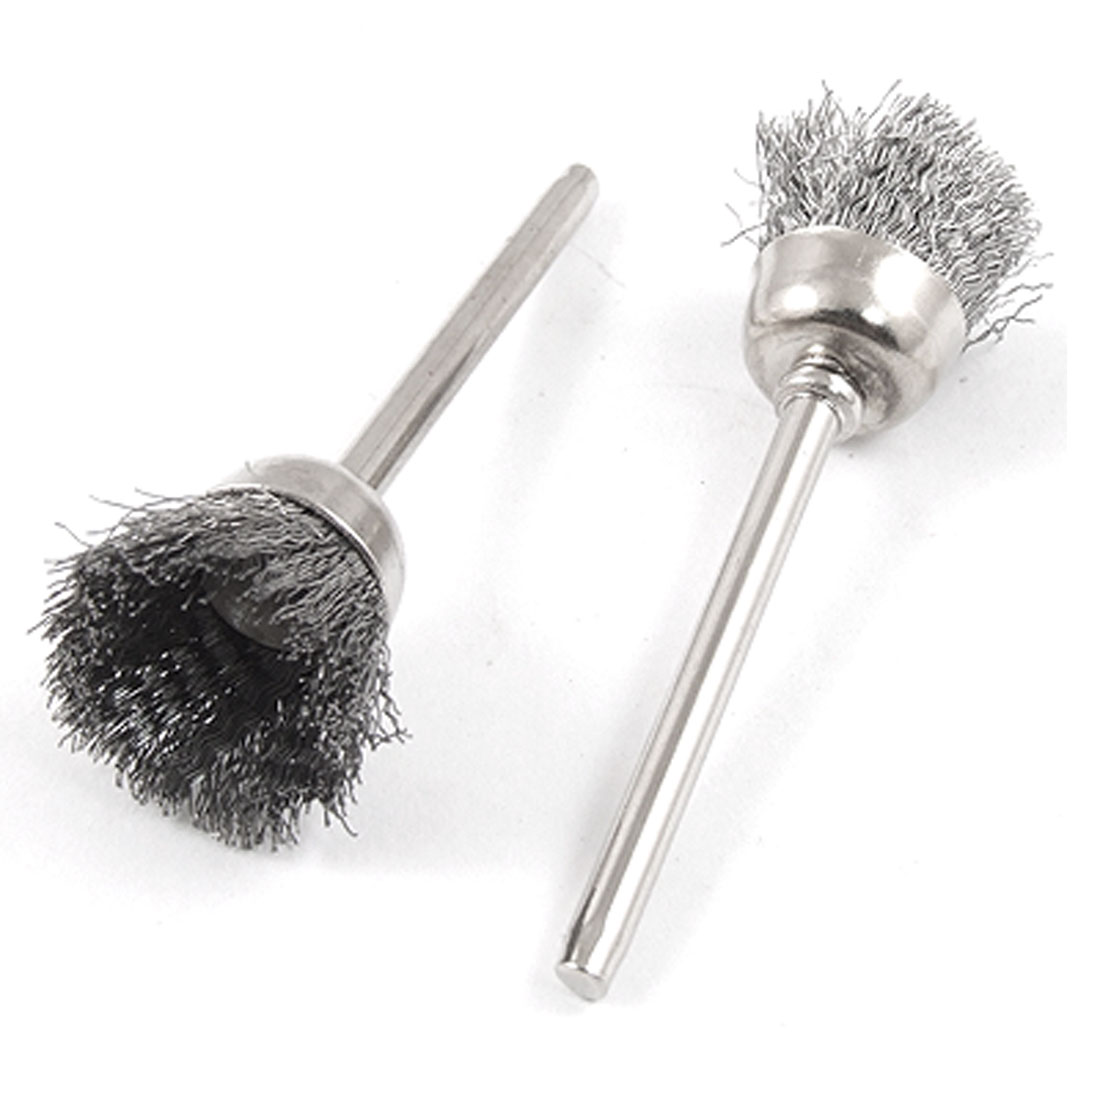 5x 3mm Mandrel 15mm Dia Rotary Tool Steel Wire Cup Brush Brushes